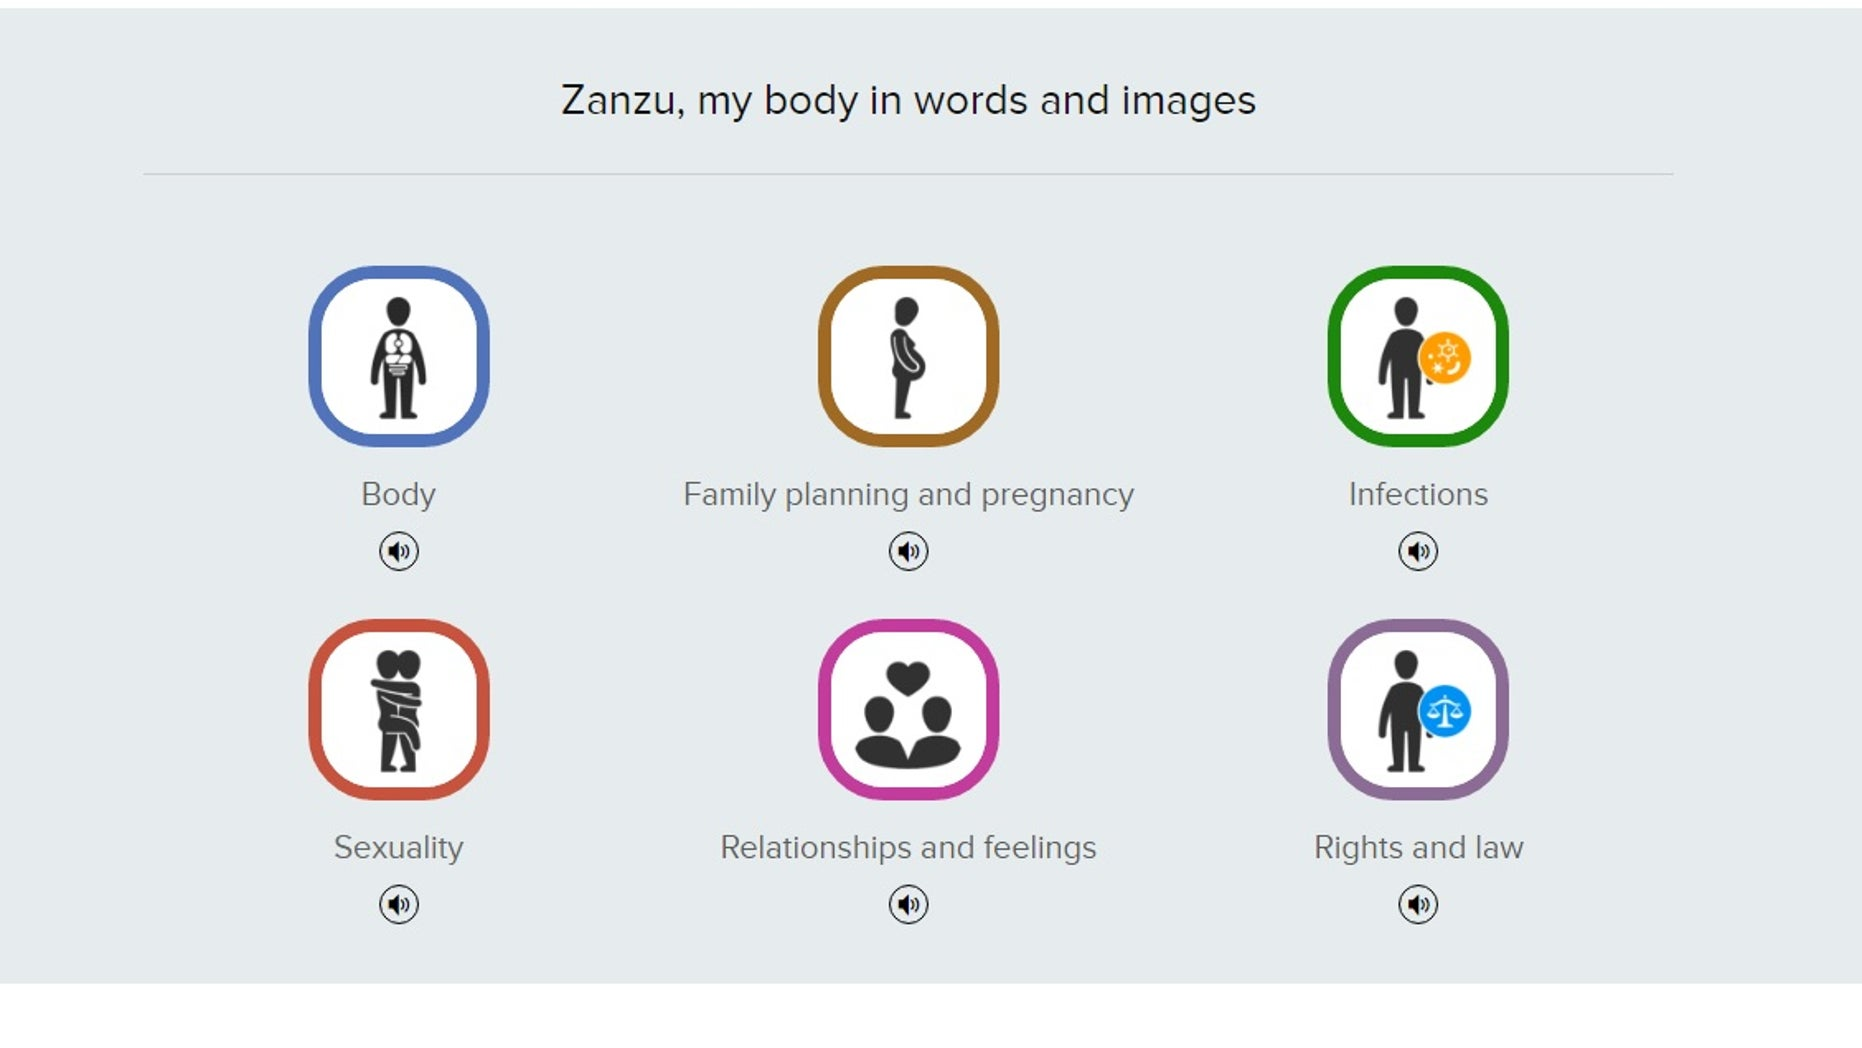 Zanzu, the website launched by the Flemish Expertise Centre for Sexual Health and the German Federal Centre for Health Education.